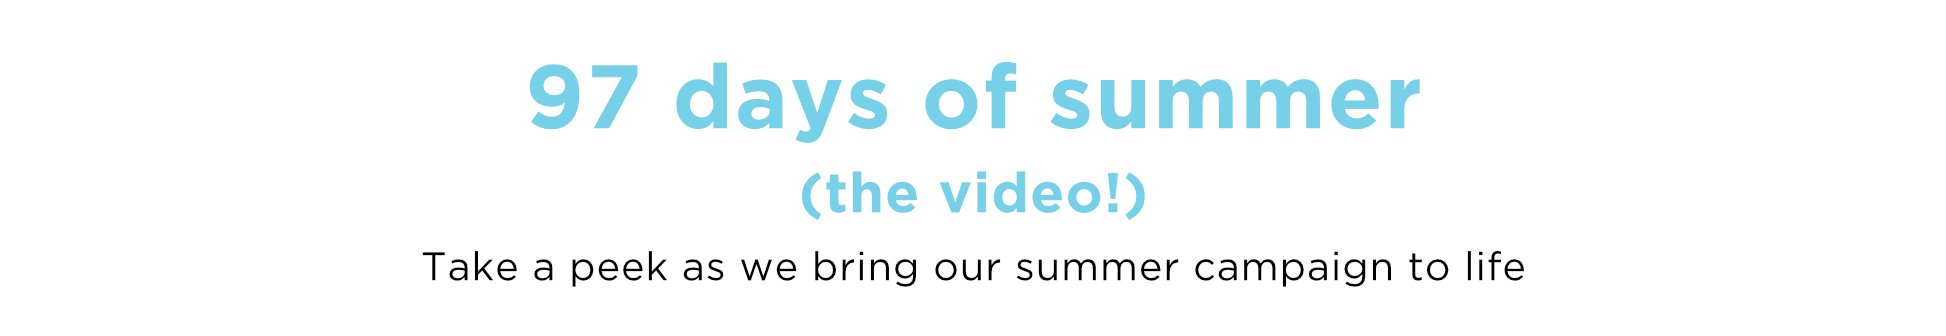 97 DAYS OF SUMMER (THE VIDEO!)